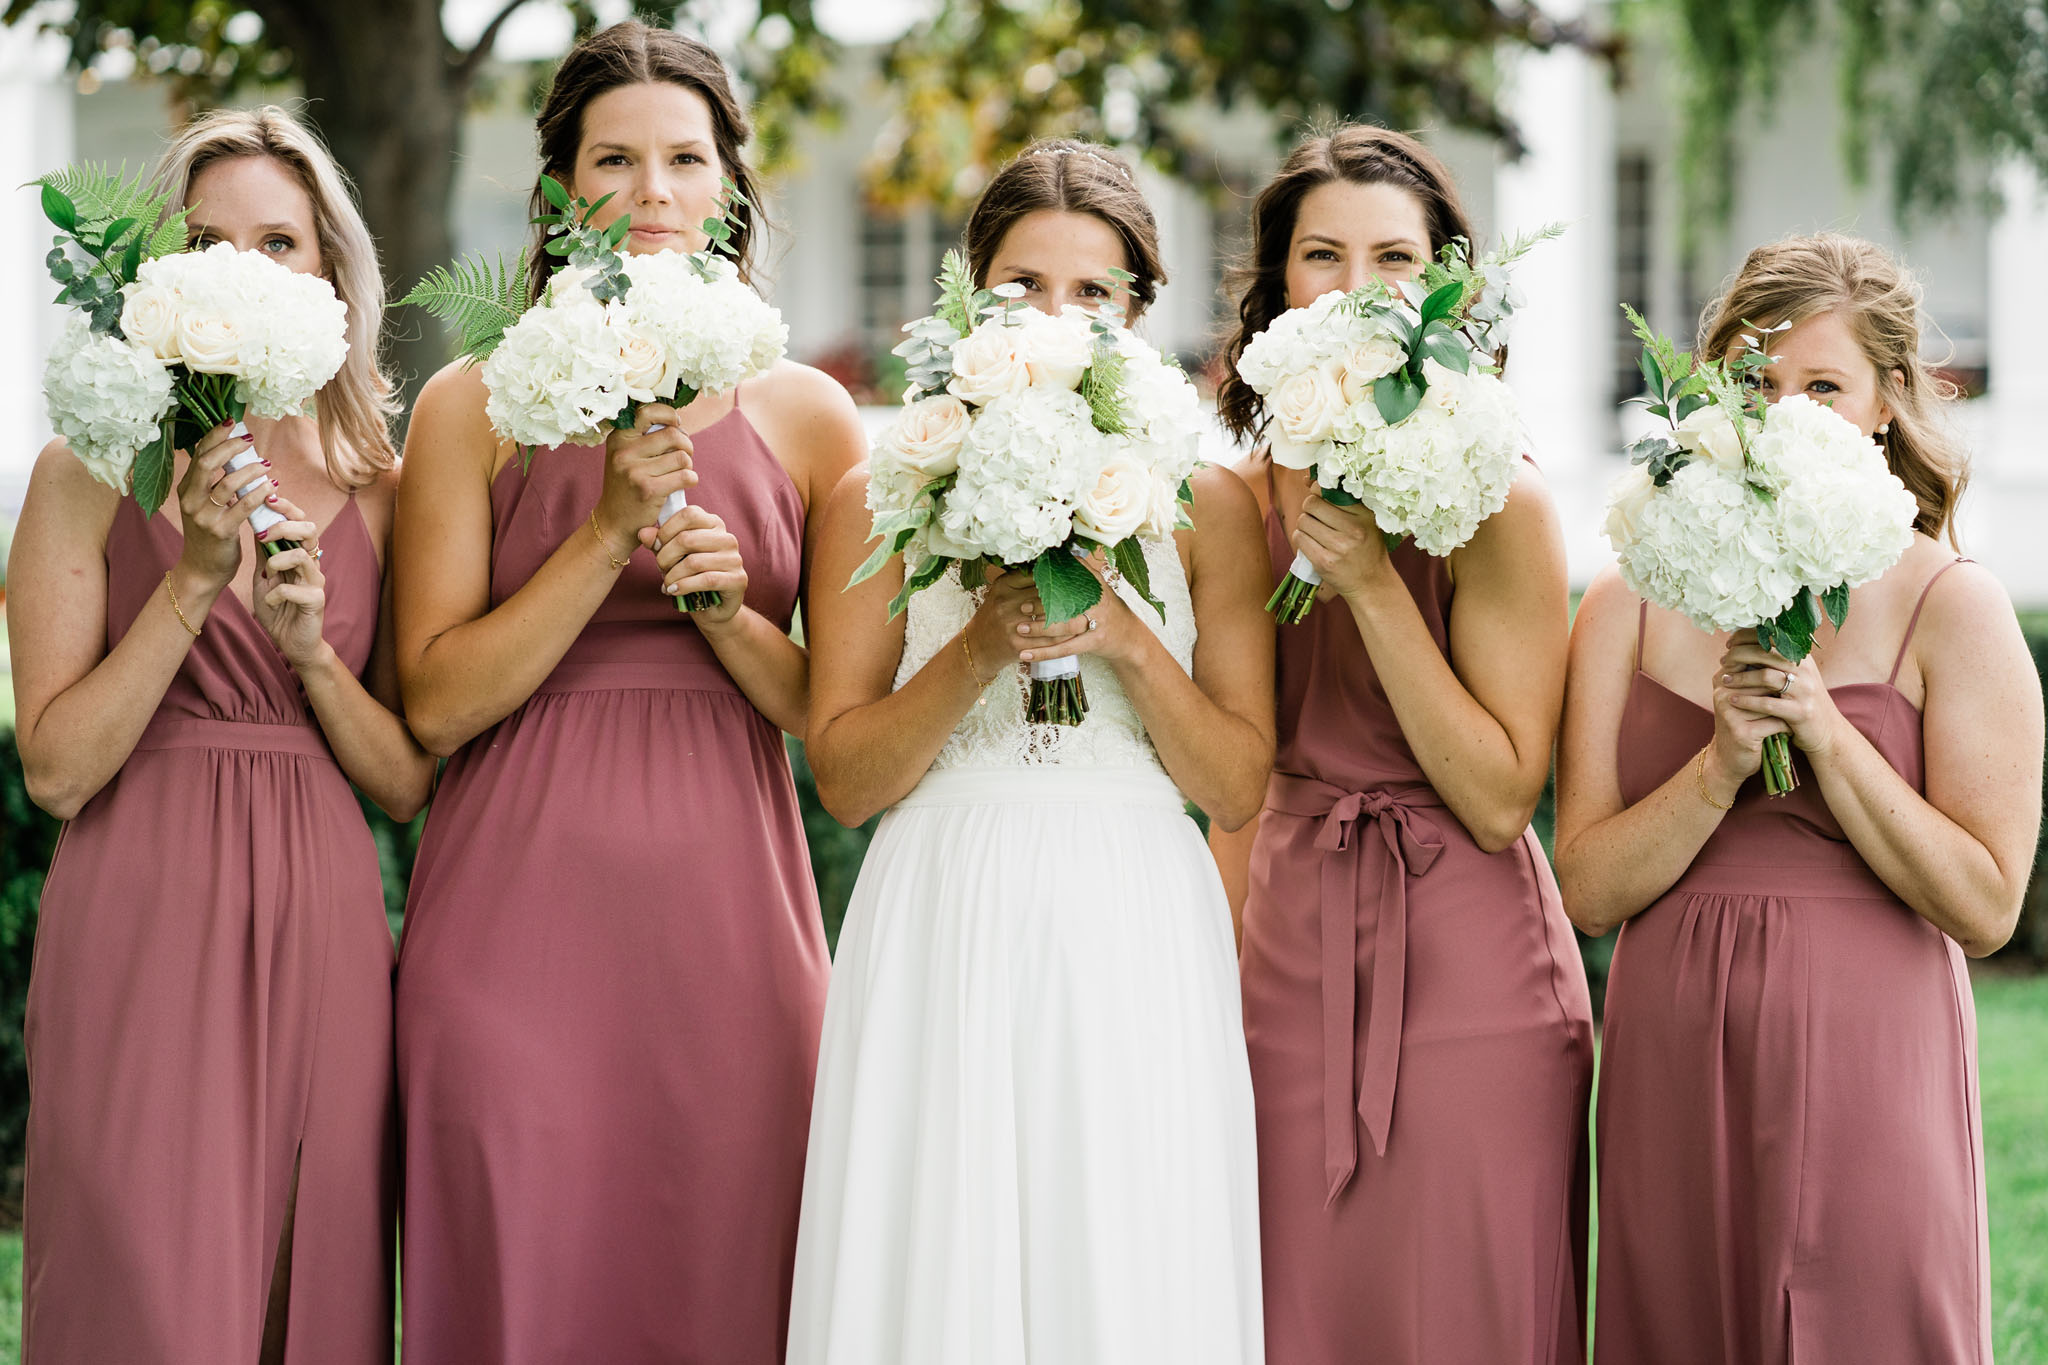 Bridesmaids all peaking out from behind their flowers.